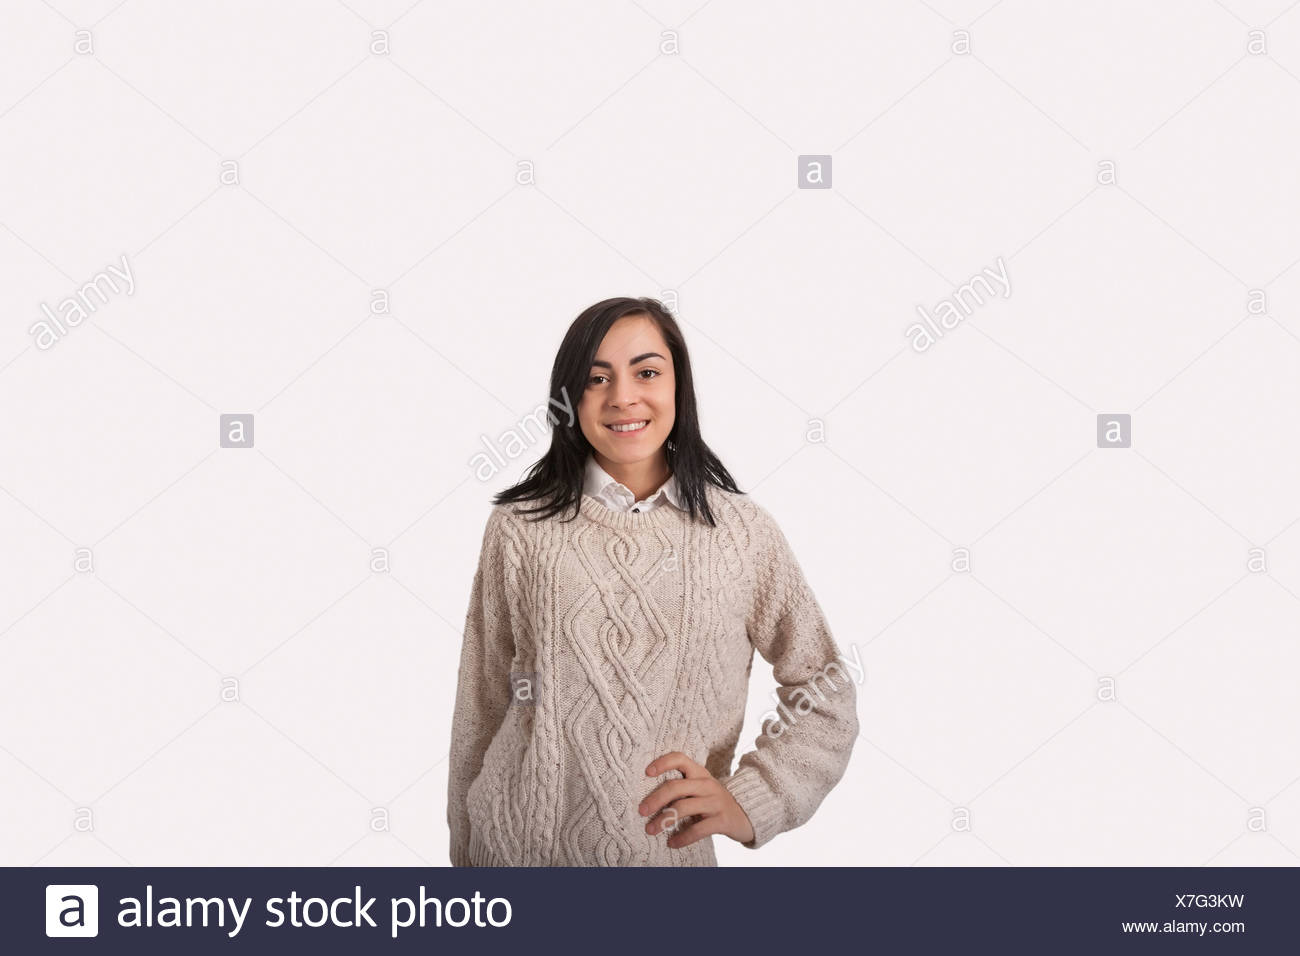 Portrait of confident businesswoman with hand on hip standing against gray background - Stock Image